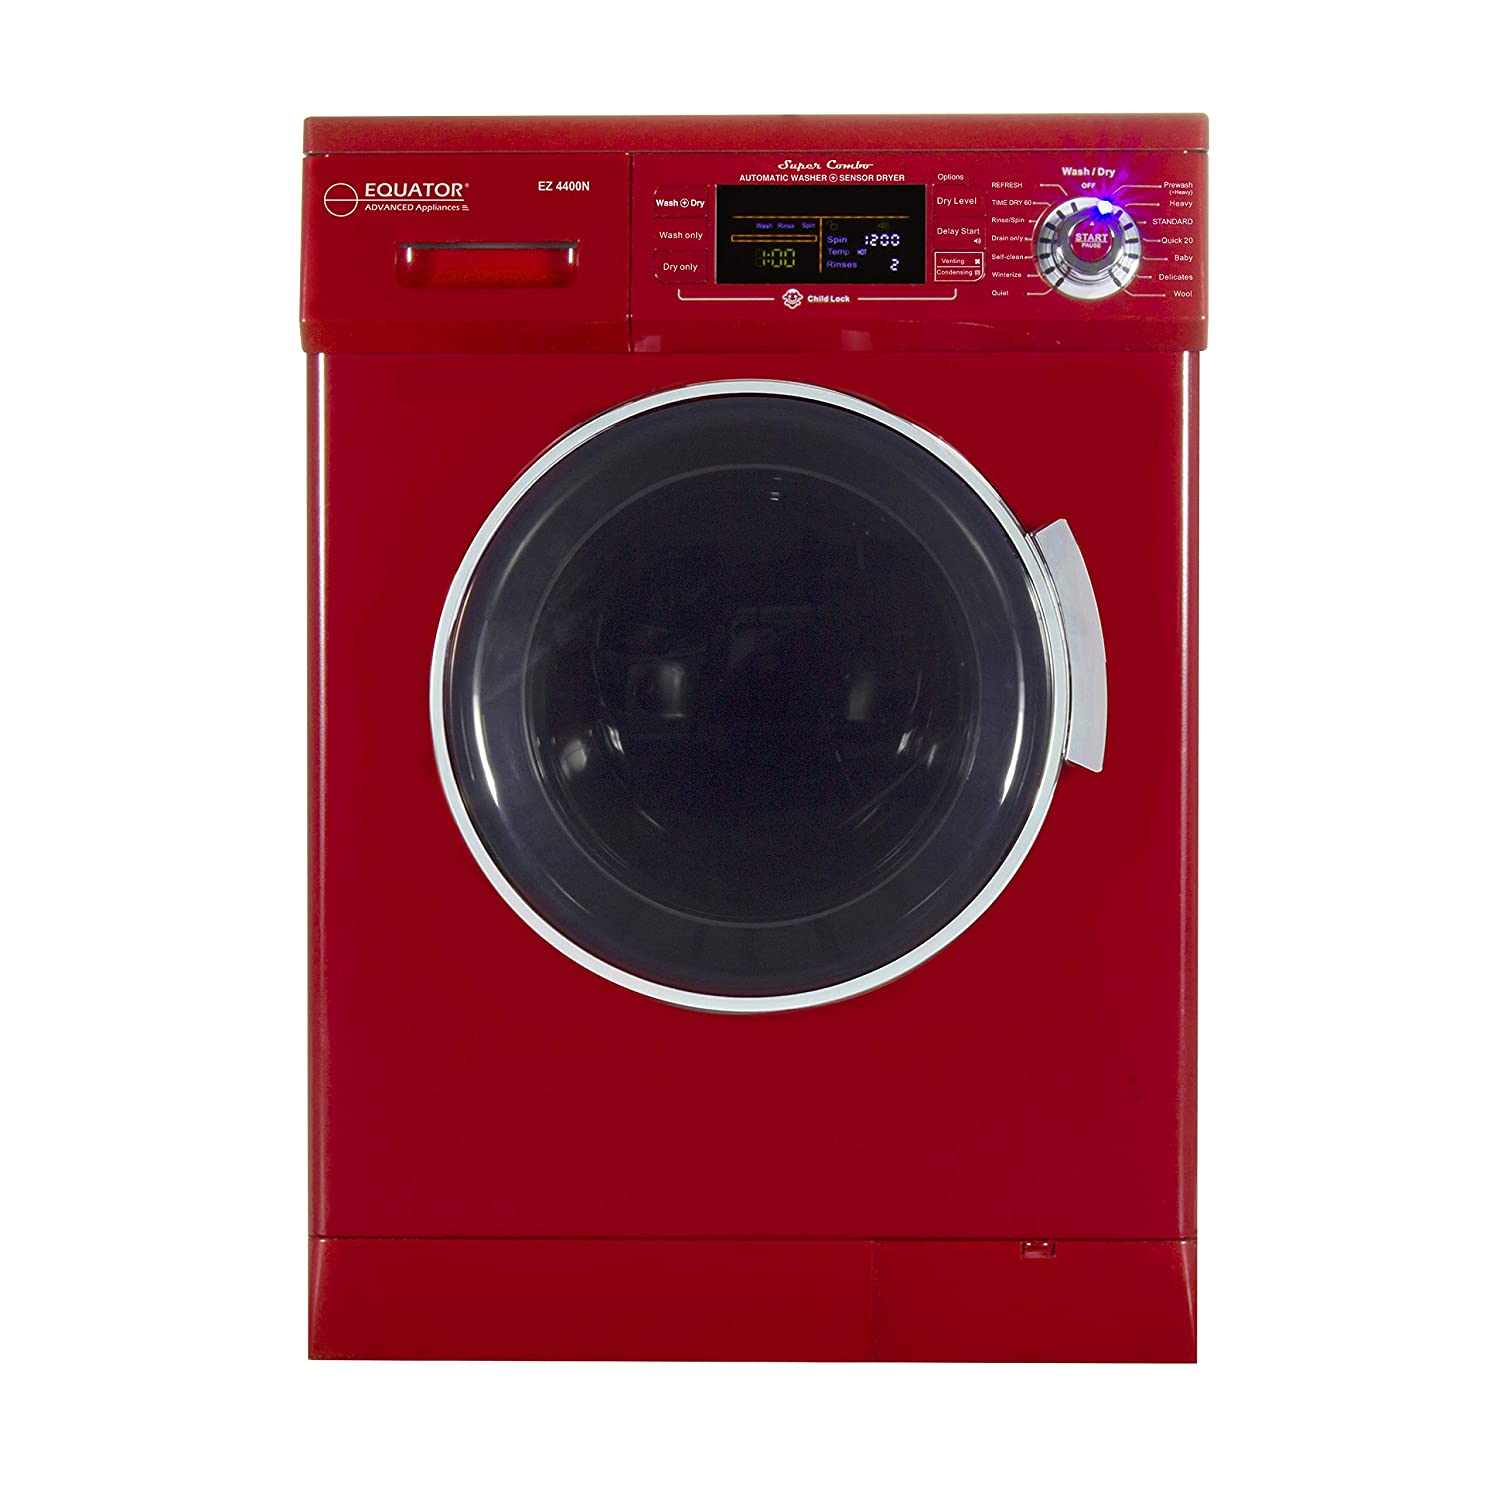 All-in-one 1200 RPM New Version Compact Convertible Combo Washer Dryer with Fully Digital Easy to use Control Panel in Merlot